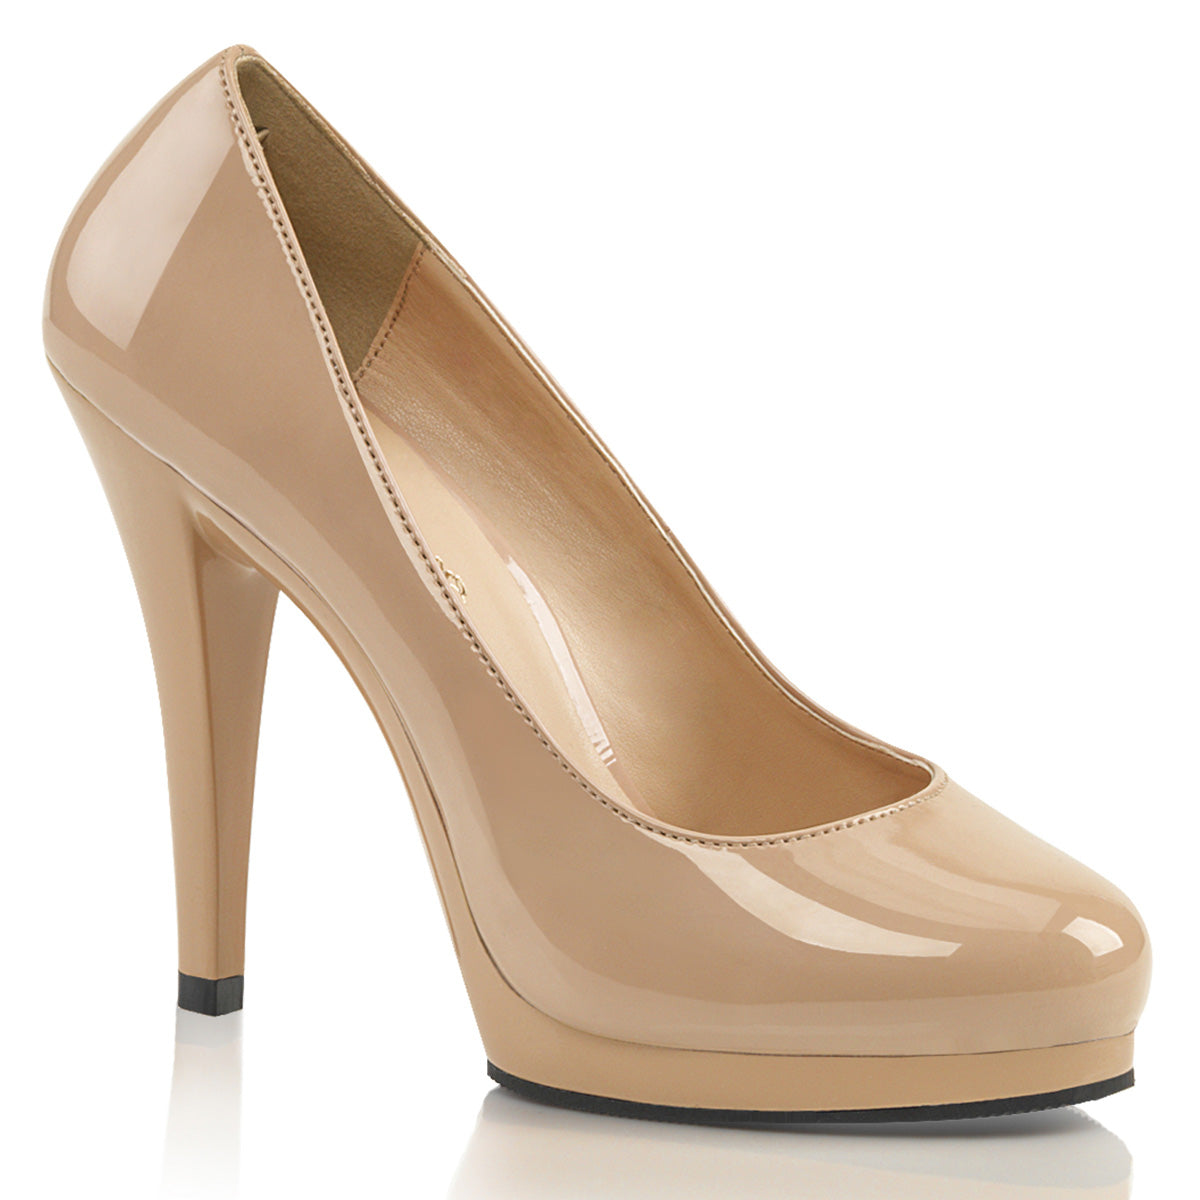 Flair 480 Nude Patent Court Shoes